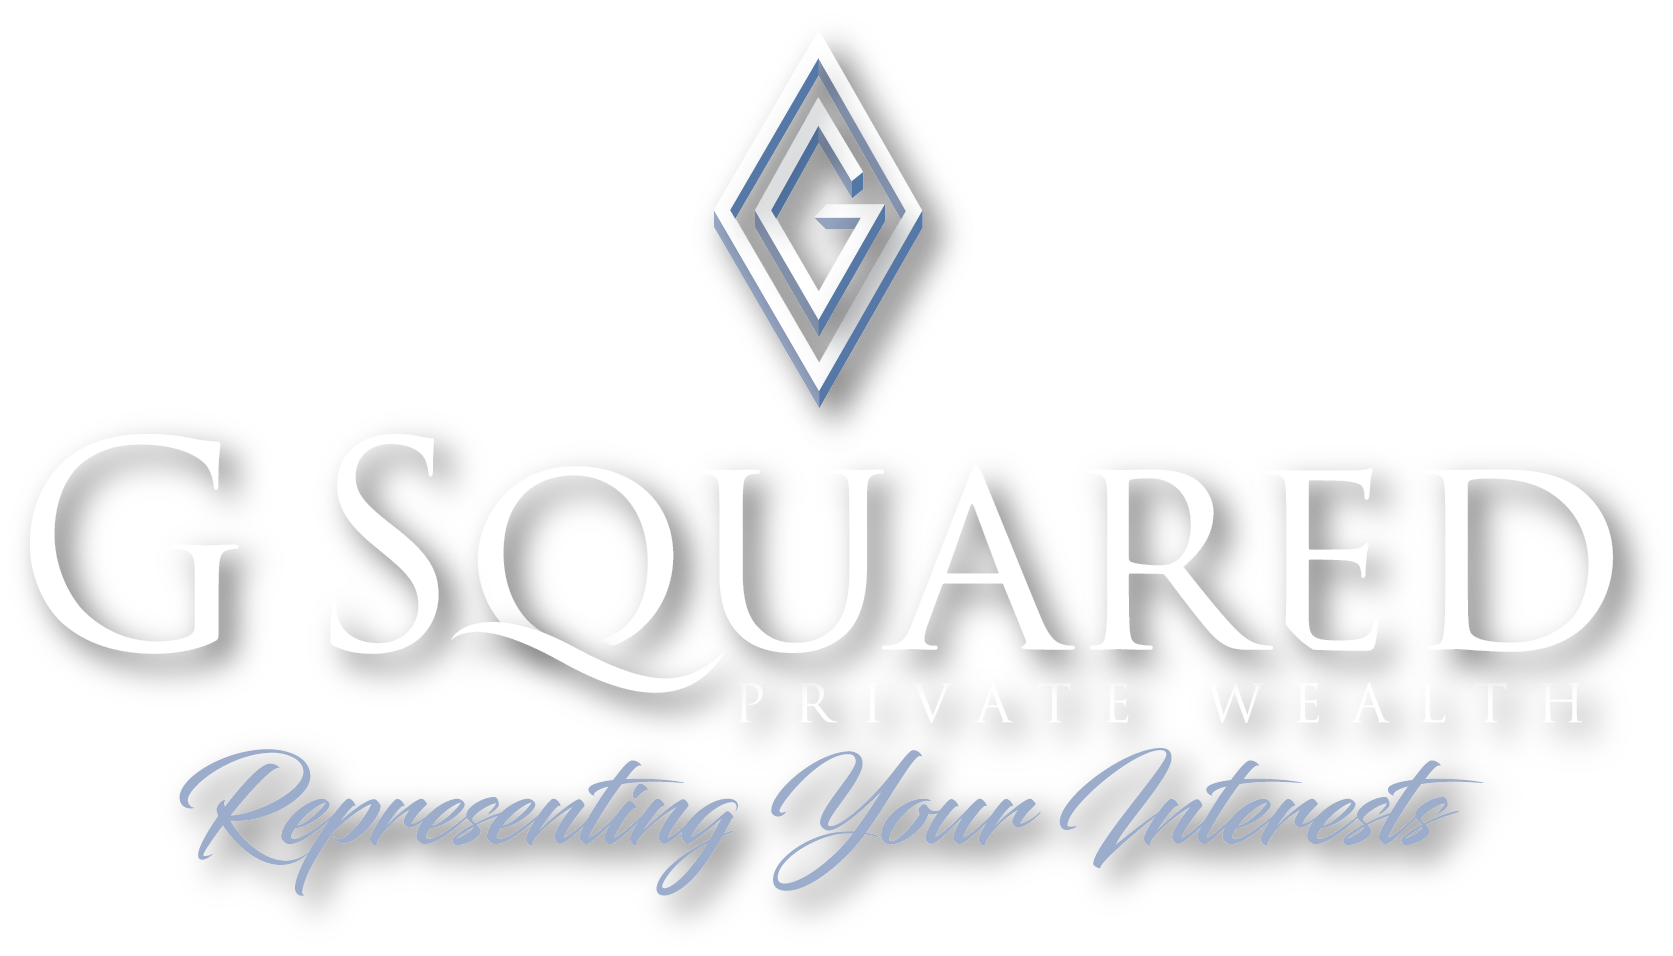 G Squared Private Wealth